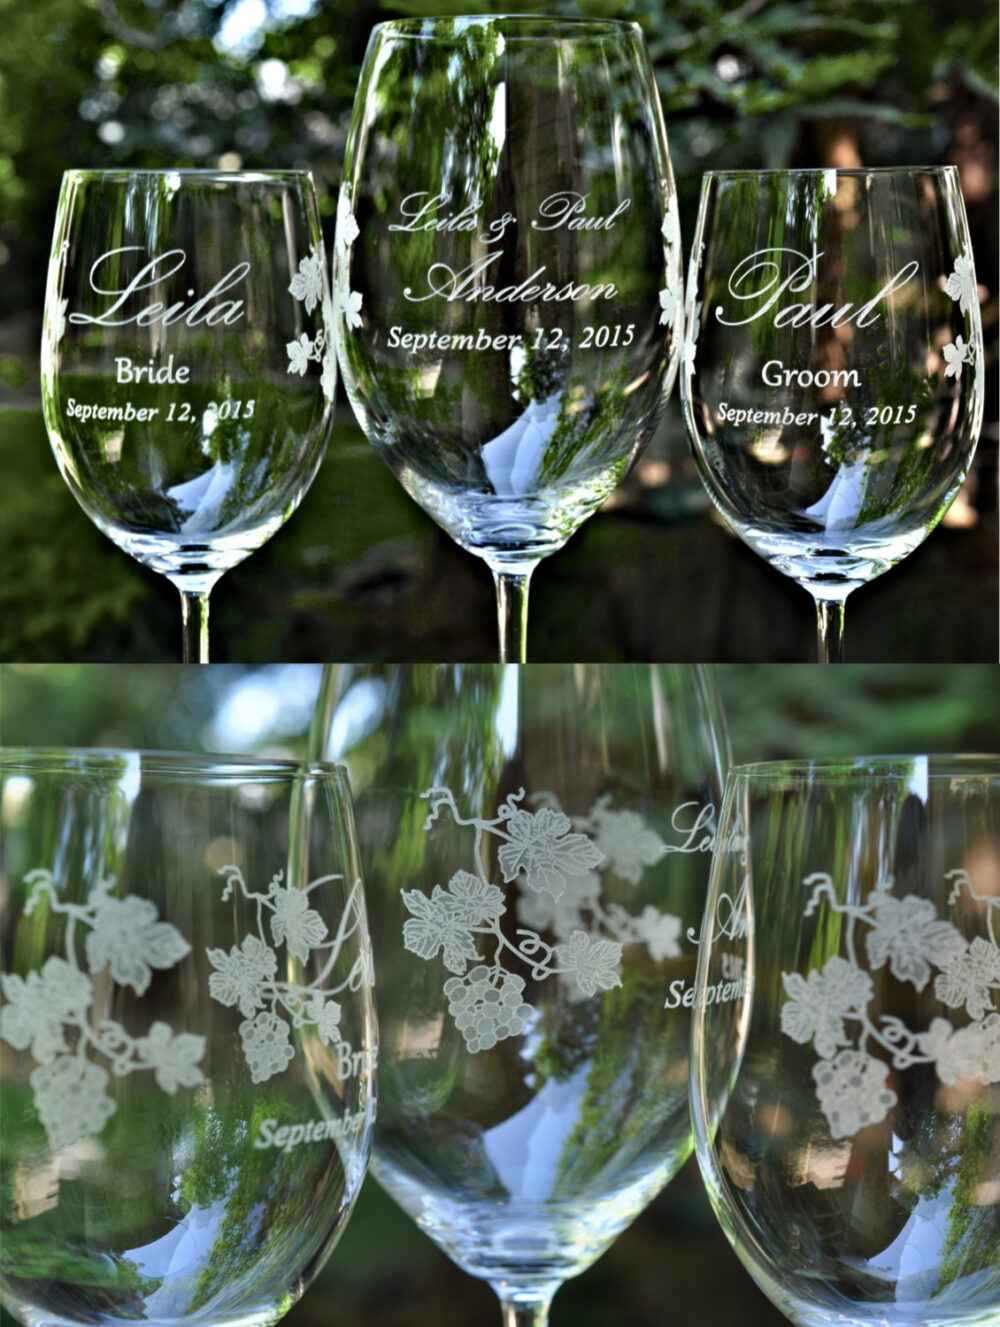 Wedding Unity Crystal Wine Glass Set Winery Themed Personalized & Dated